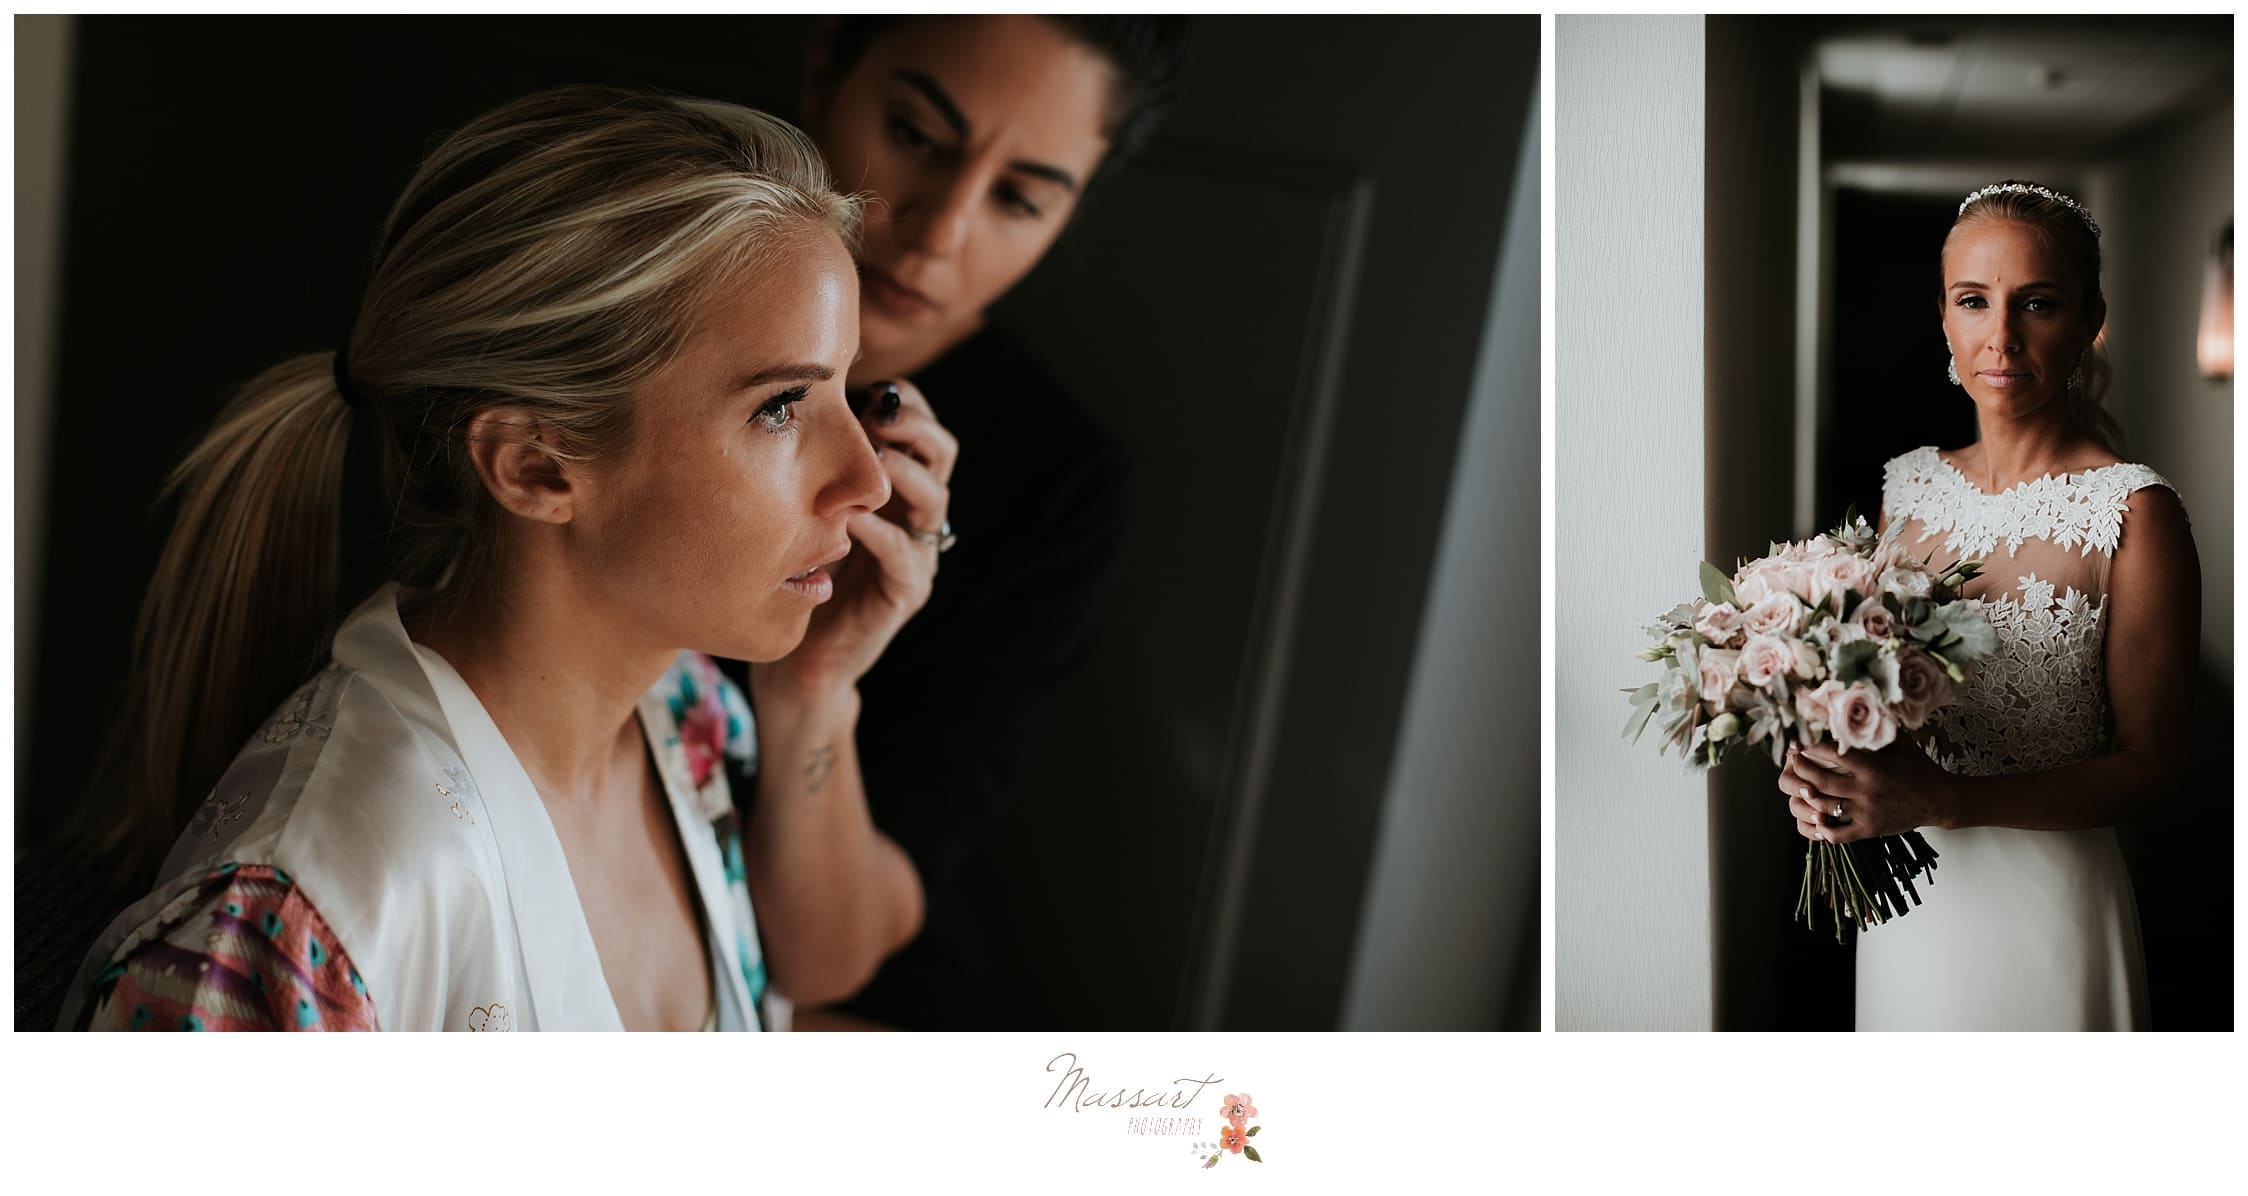 The bride gets ready before the wedding ceremony photographed by Massart Photography Rhode Island